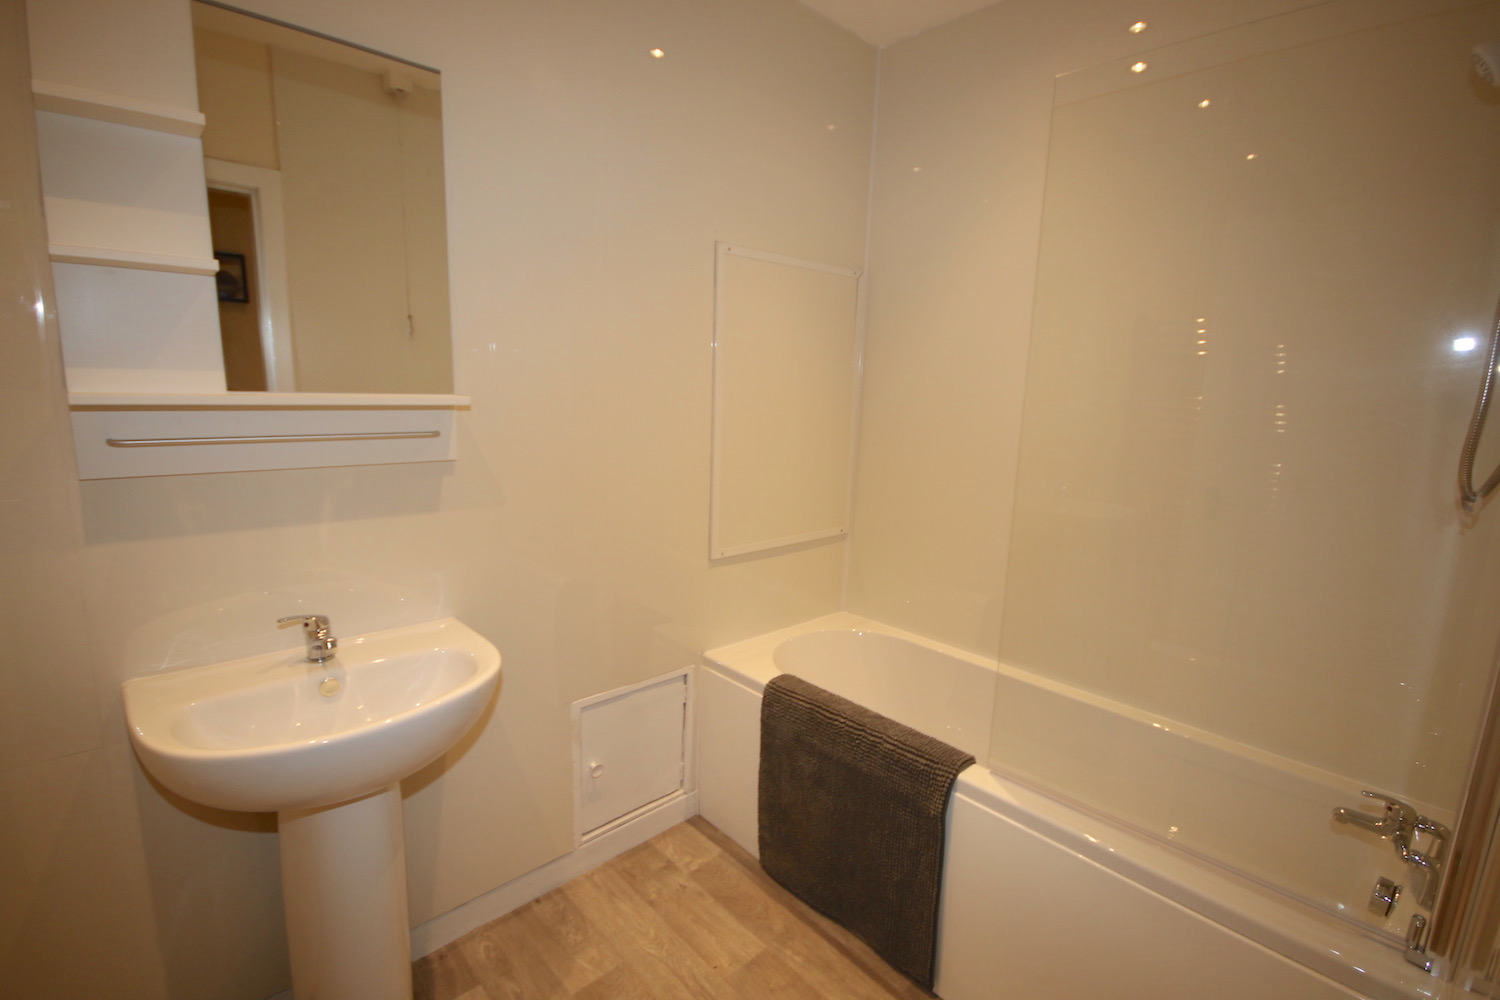 1 room in Bunhill, Clerkenwell London, EC1 8JU RoomsLocal image